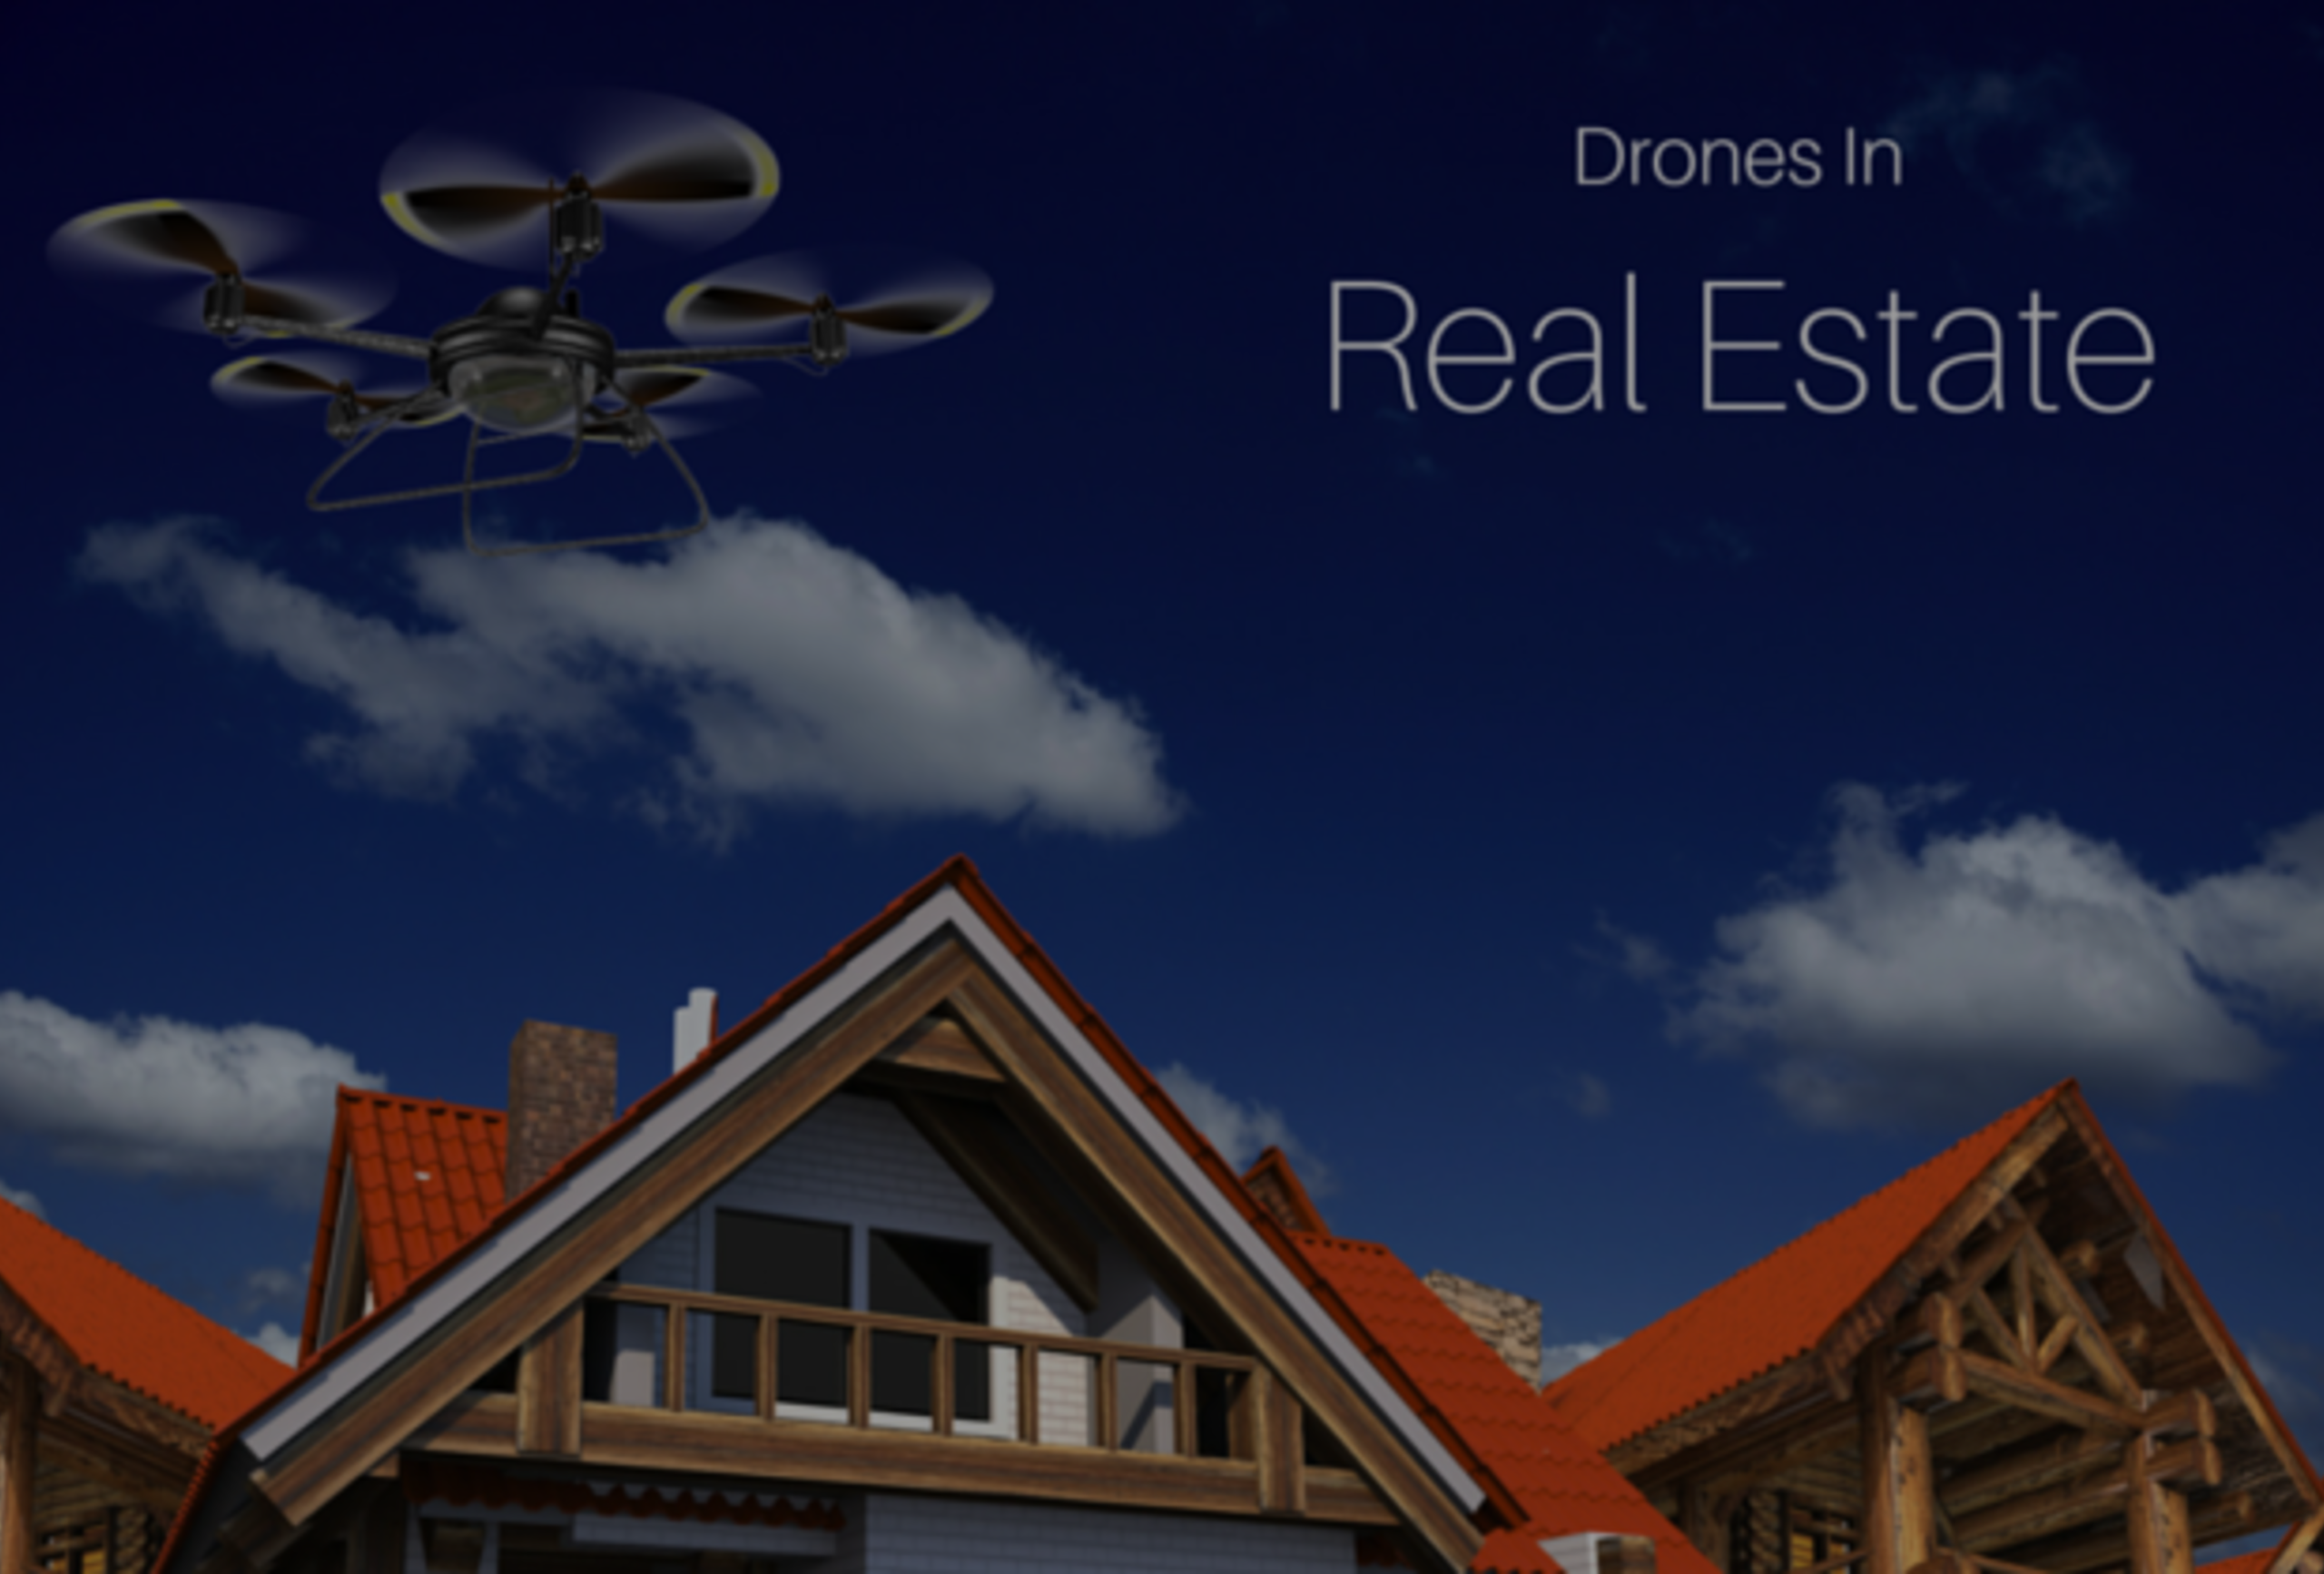 Drone Use In Real Estate